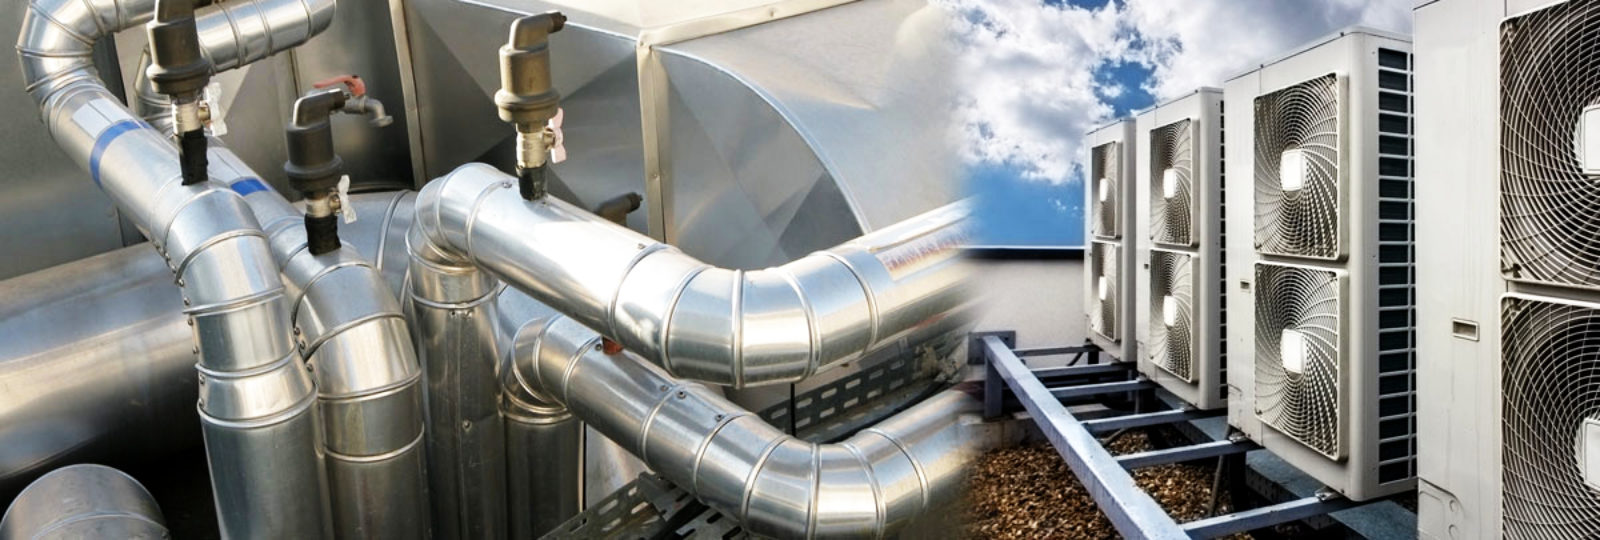 An image that shows the wide range of commercial ventilation systems that can be installed by Vent Logistics Limited